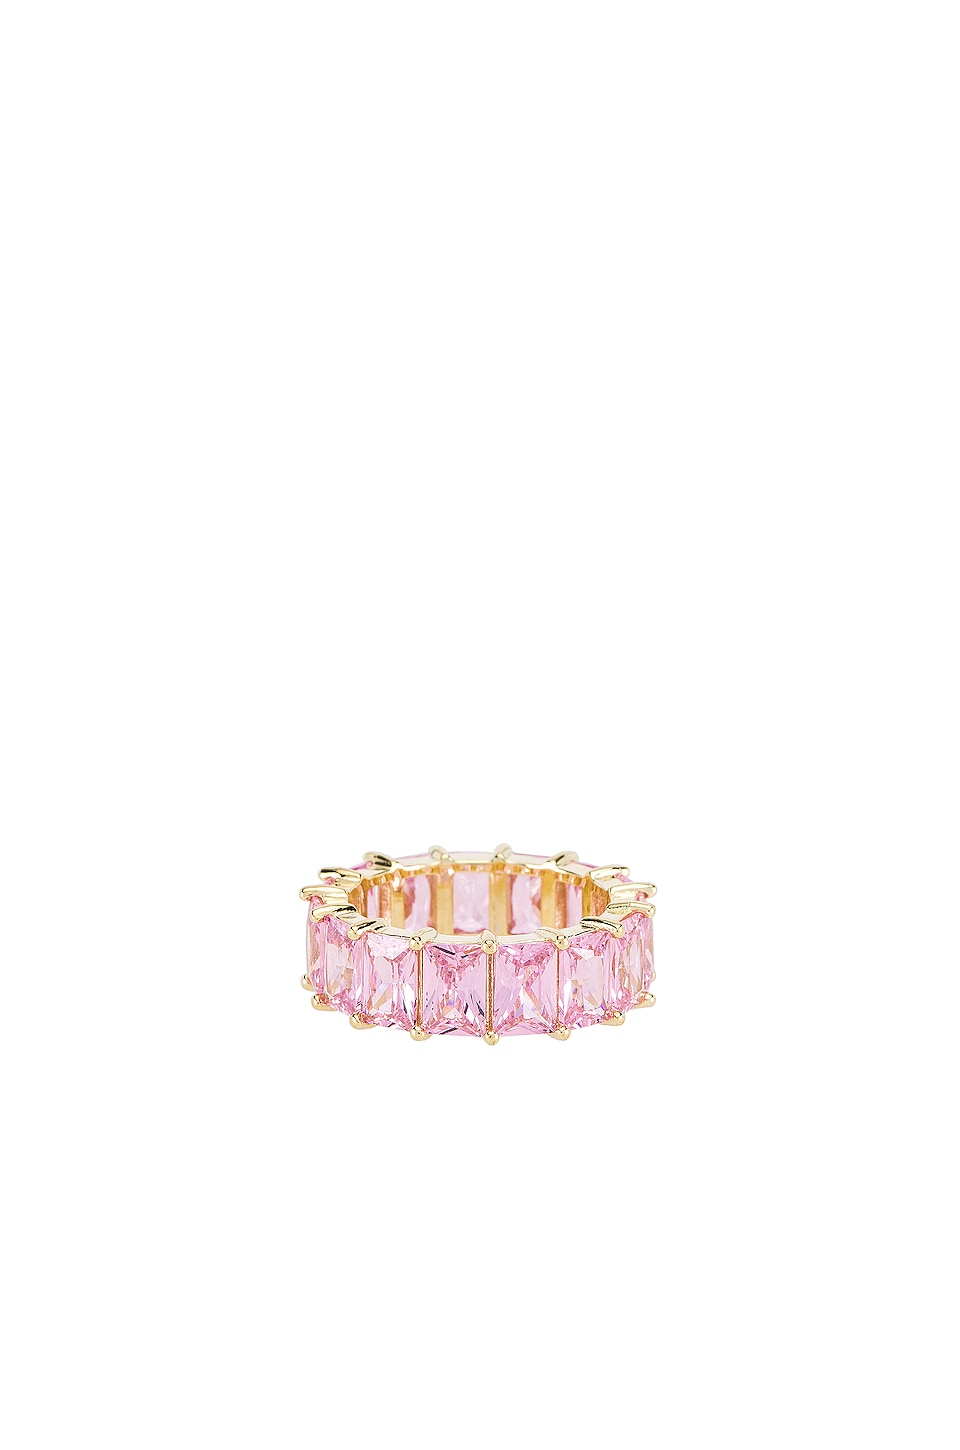 The M Jewelers NY Light Pink Colored Band in Pink